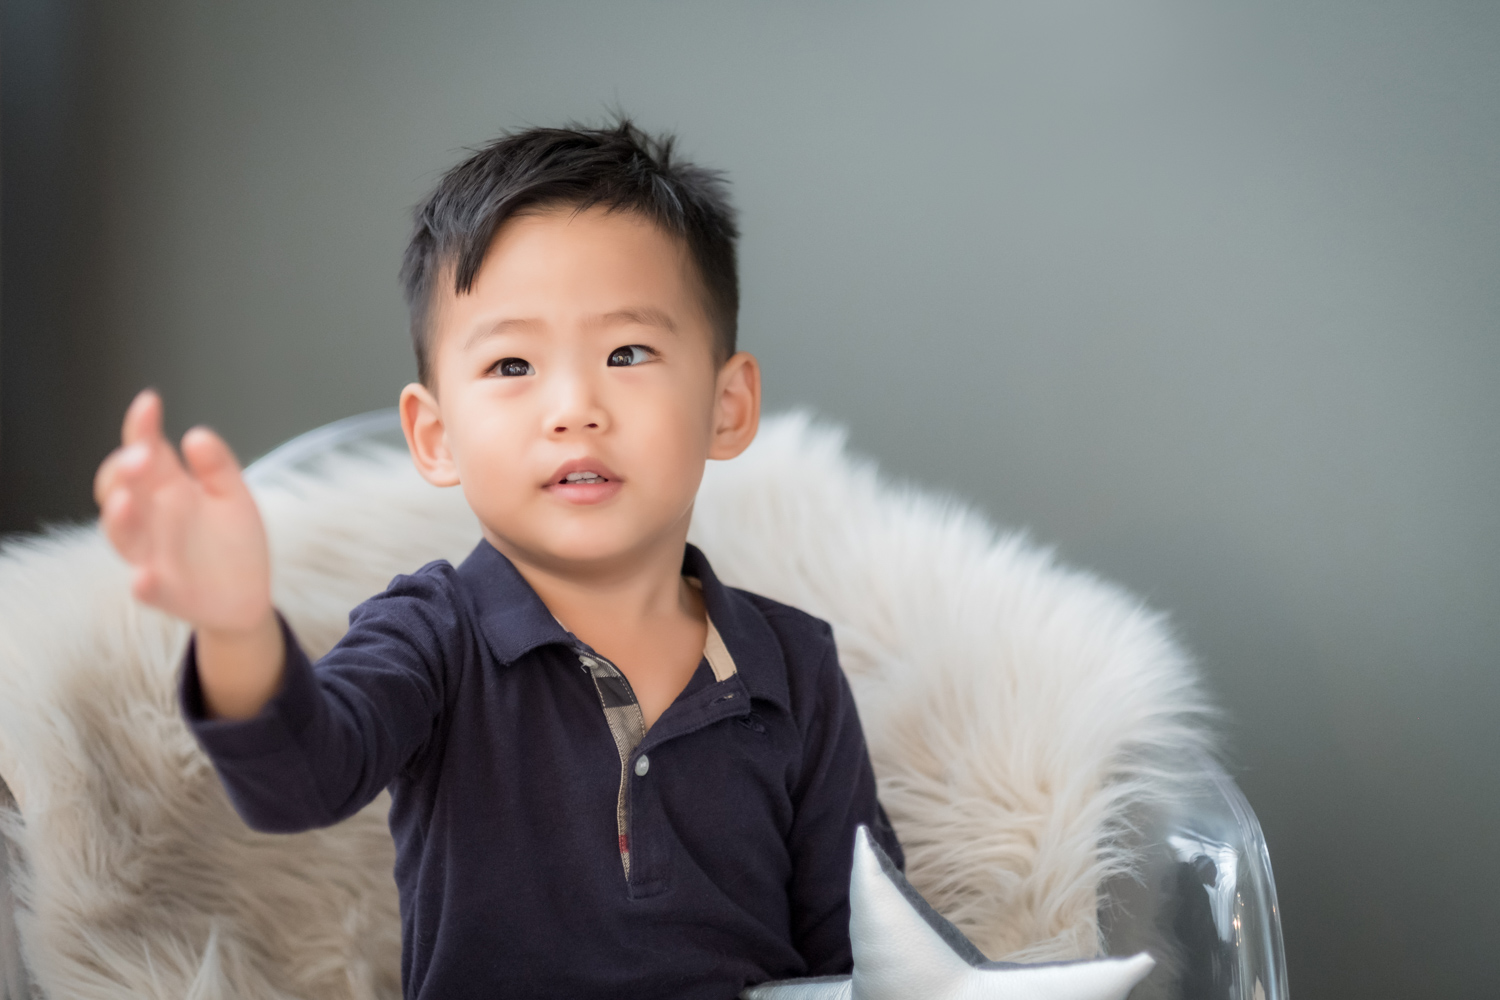 Little boy sits on a faux fur blanket and looks off camera during a photoshoot.